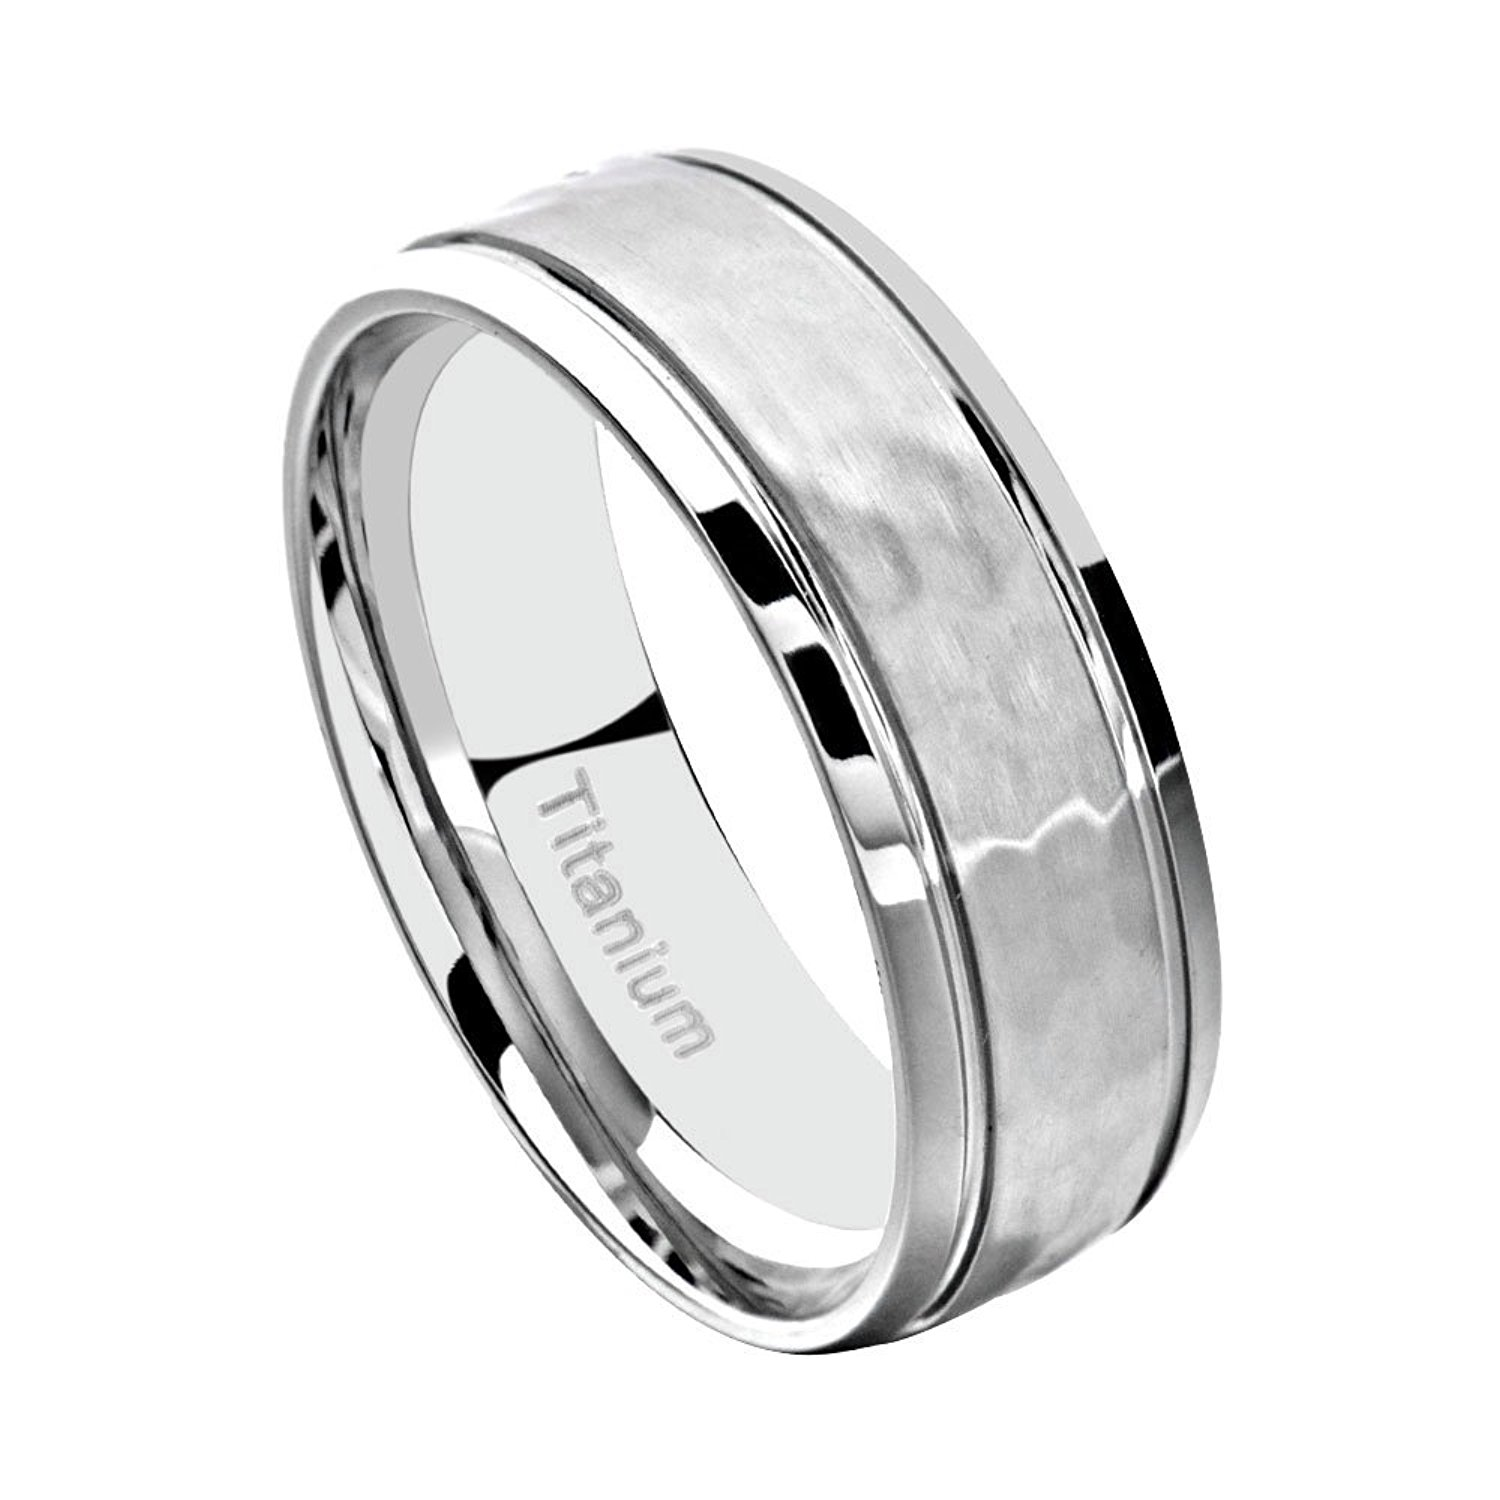 Jewelry & Watches Bridal & Wedding Party Jewelry Objective Titanium 8mm Yellow Plated Ridged Edge Brushed Wedding Ring Band Size 8.50 Pretty And Colorful